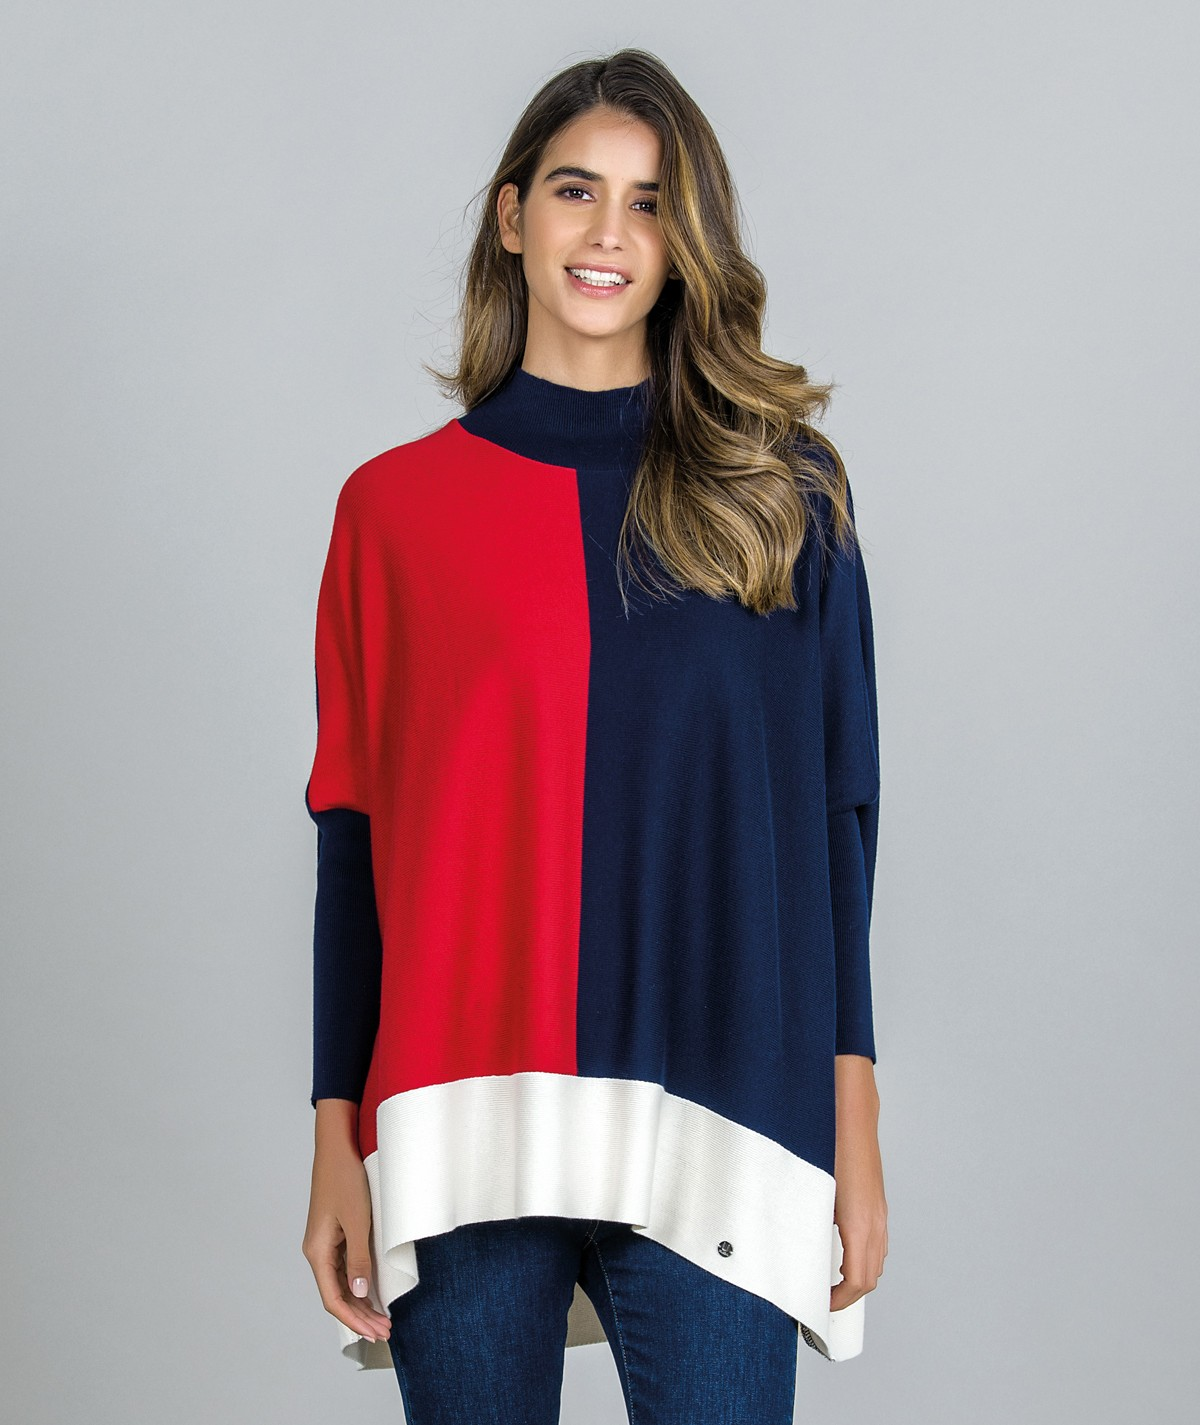 Camisola Oversize tricolor